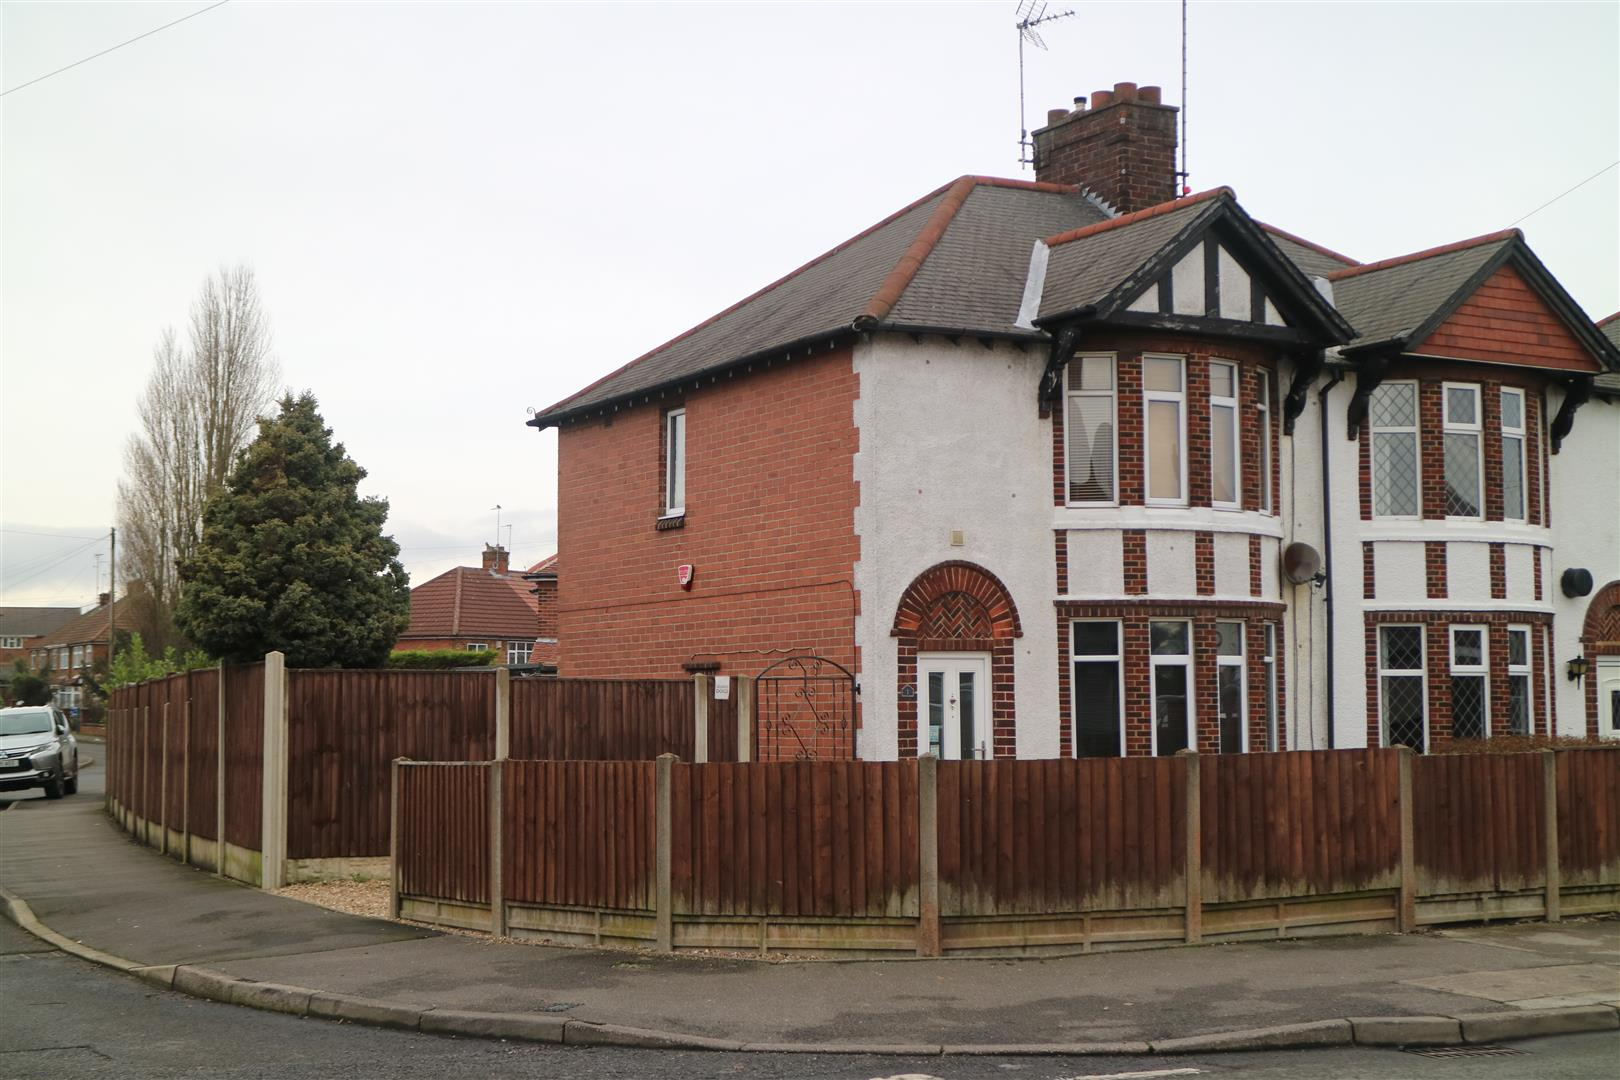 Dalestorth Road Sutton-In-Ashfield NG17 3AE